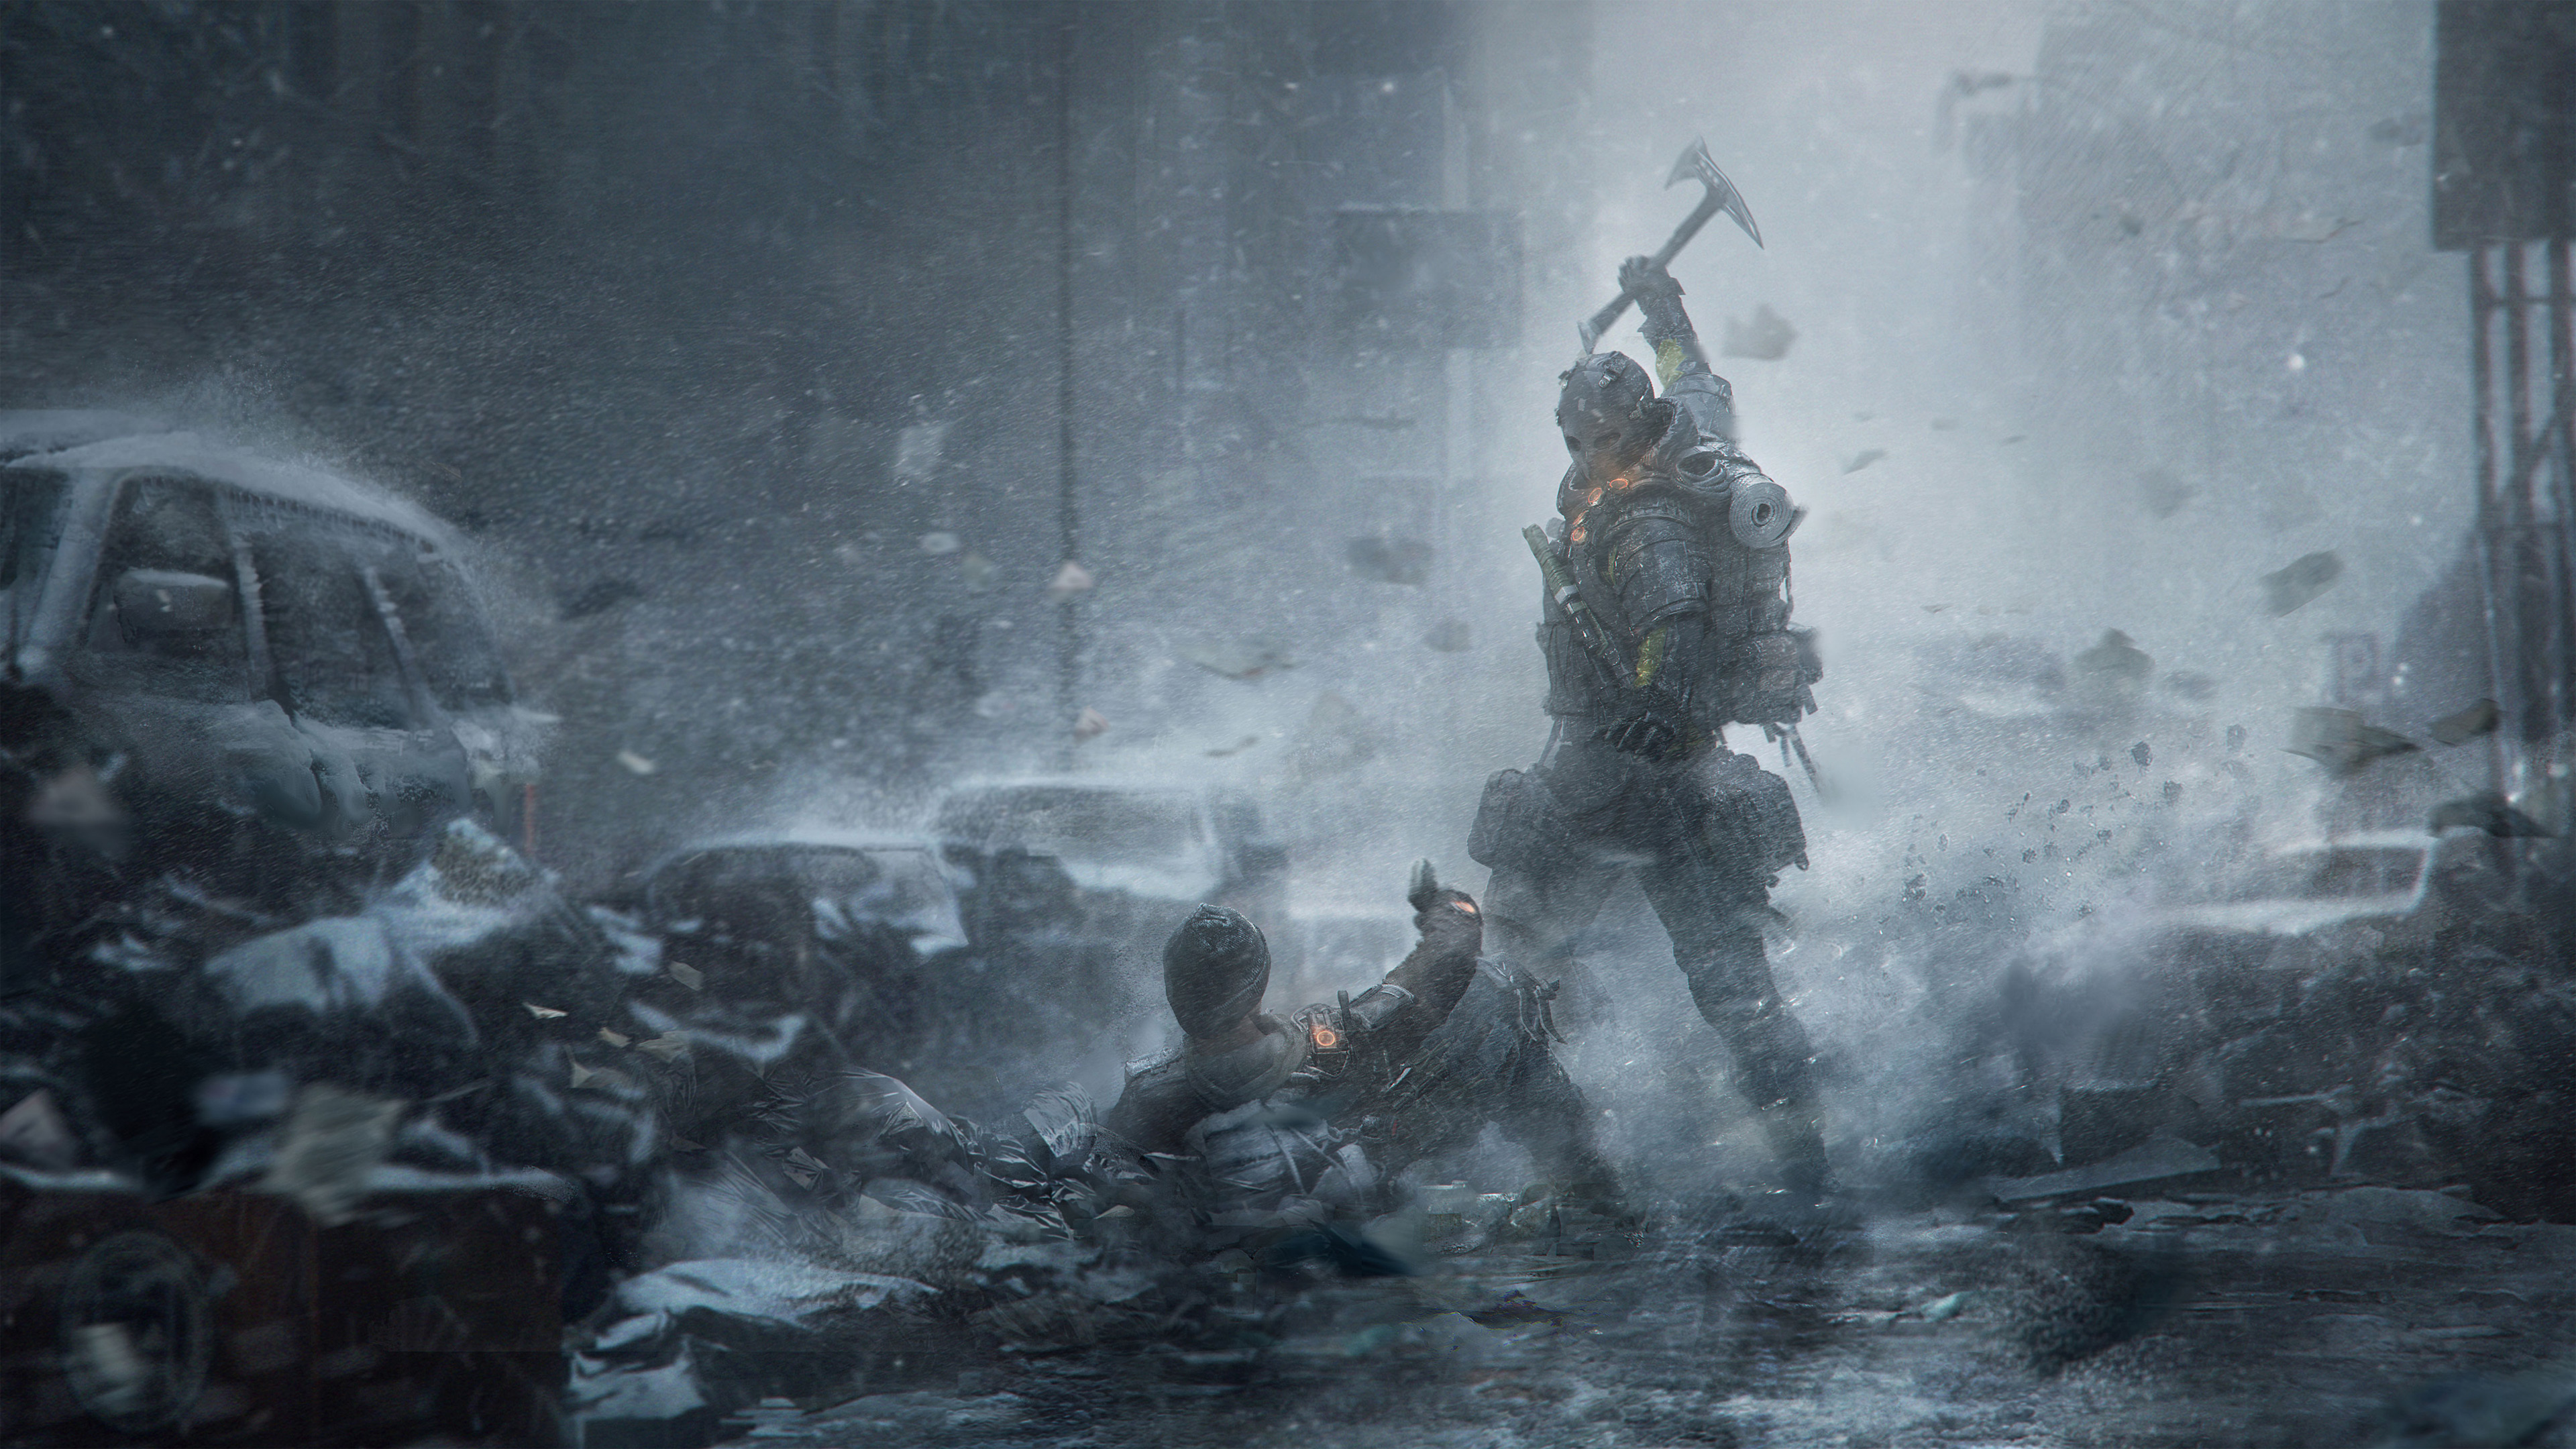 Tom Clancys The Division Survival Artwork Hd Games 4k Wallpapers